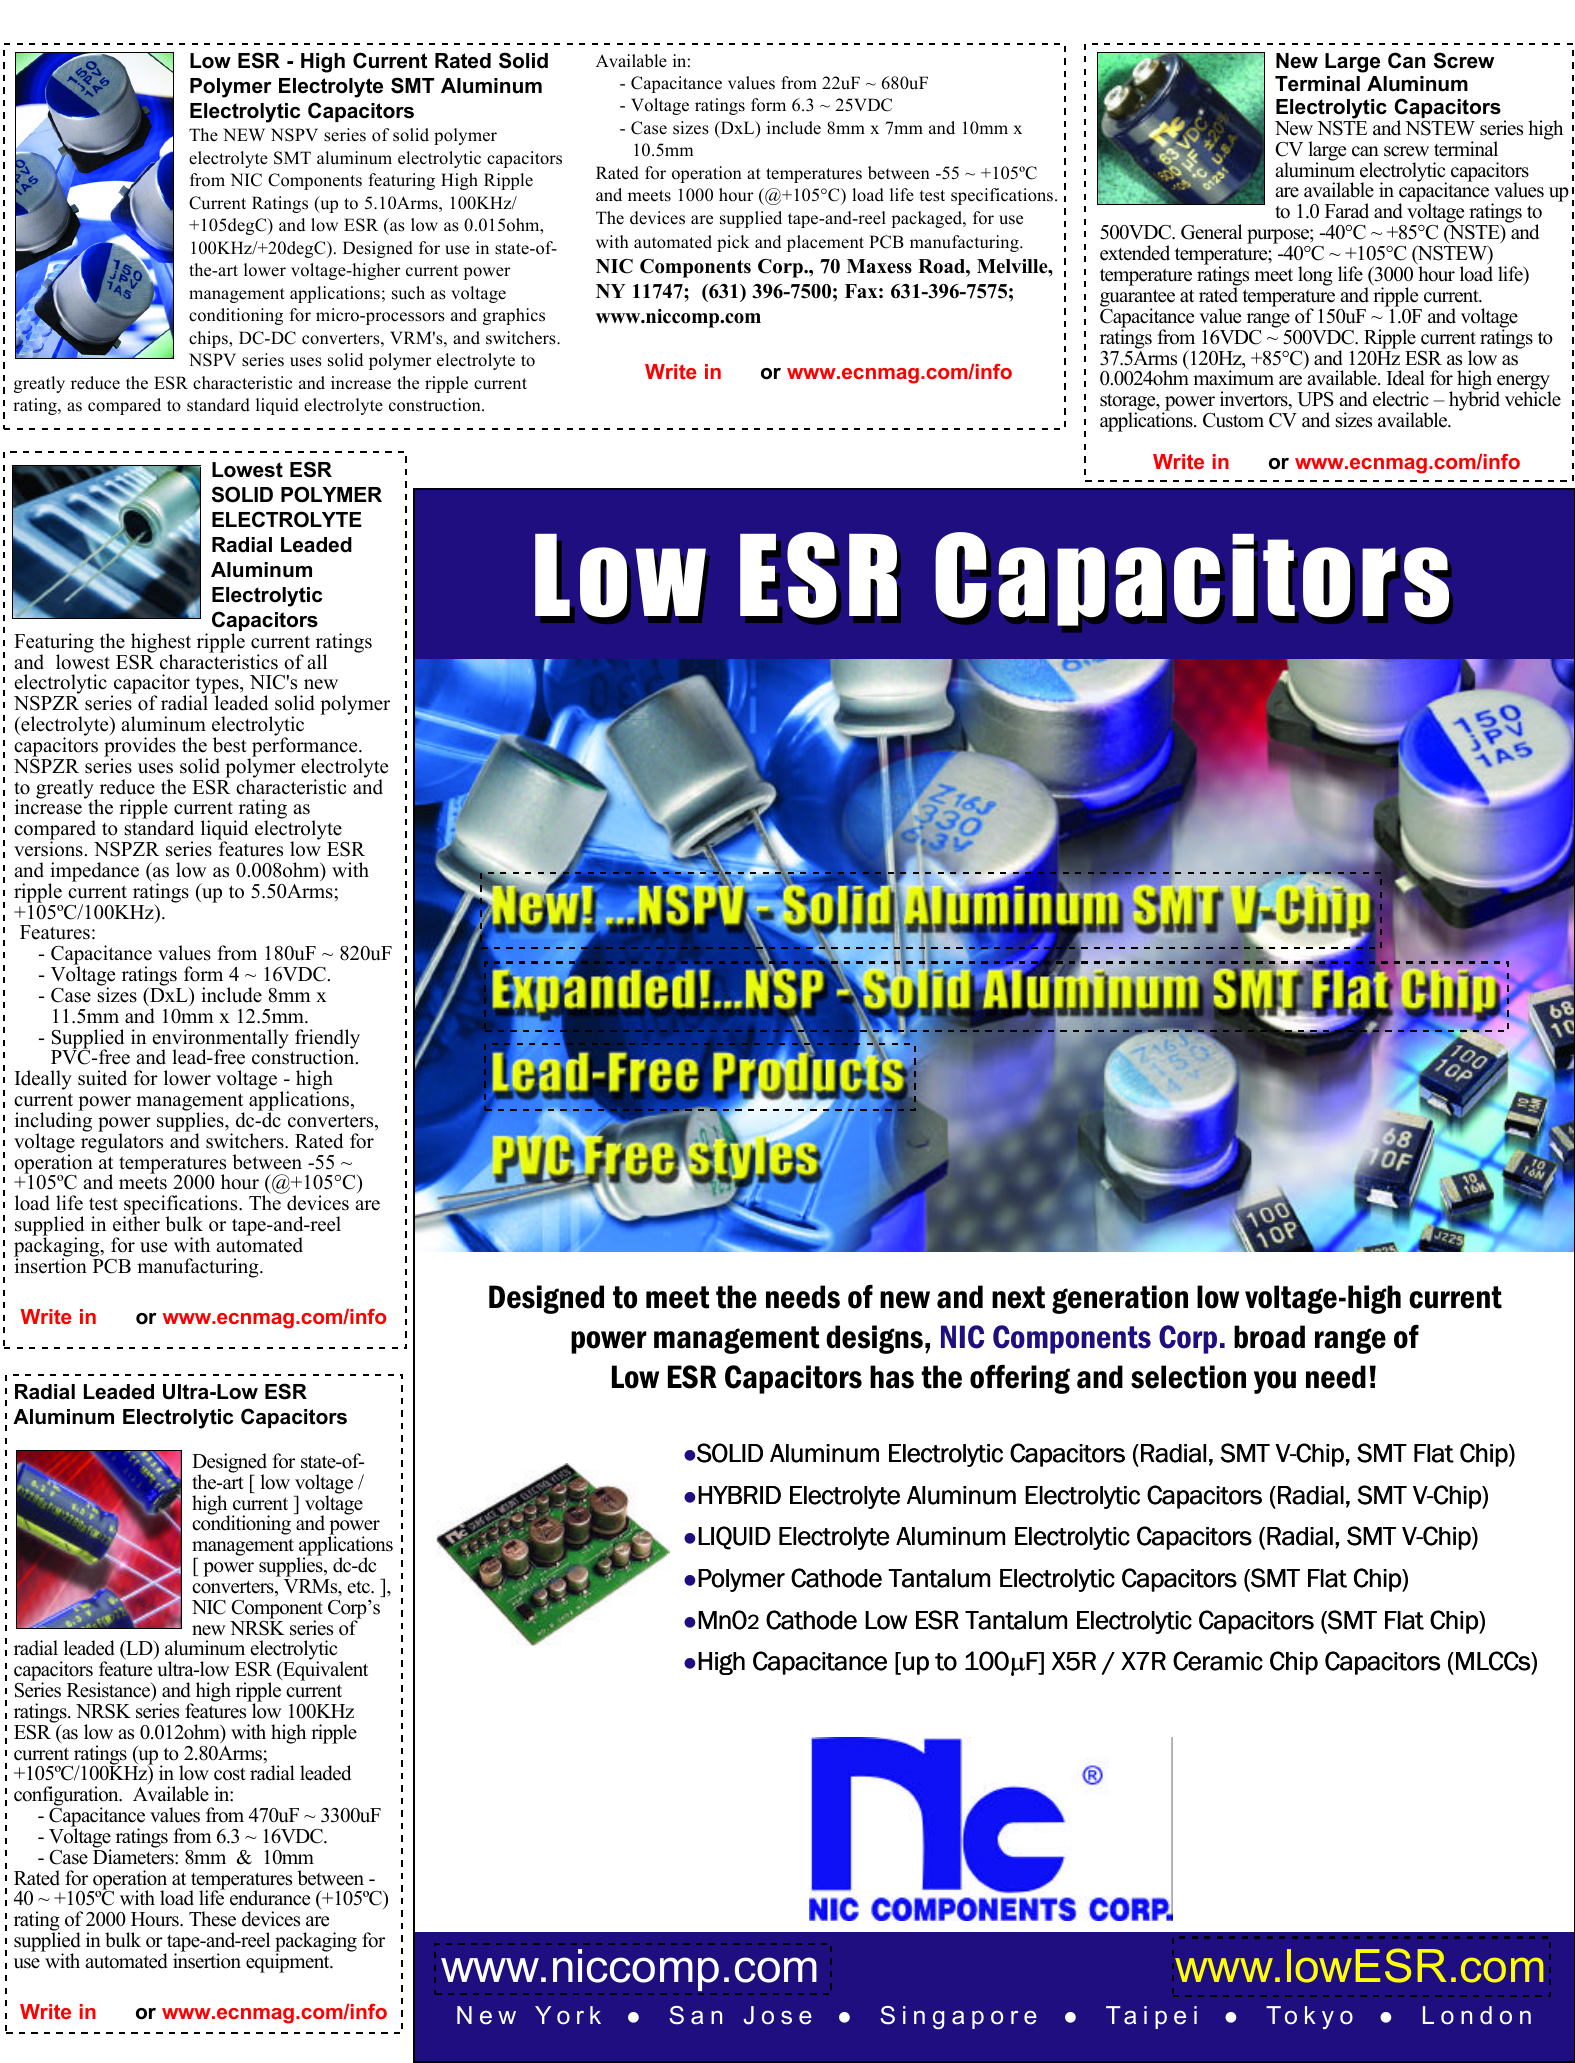 Low ESR Capacitors